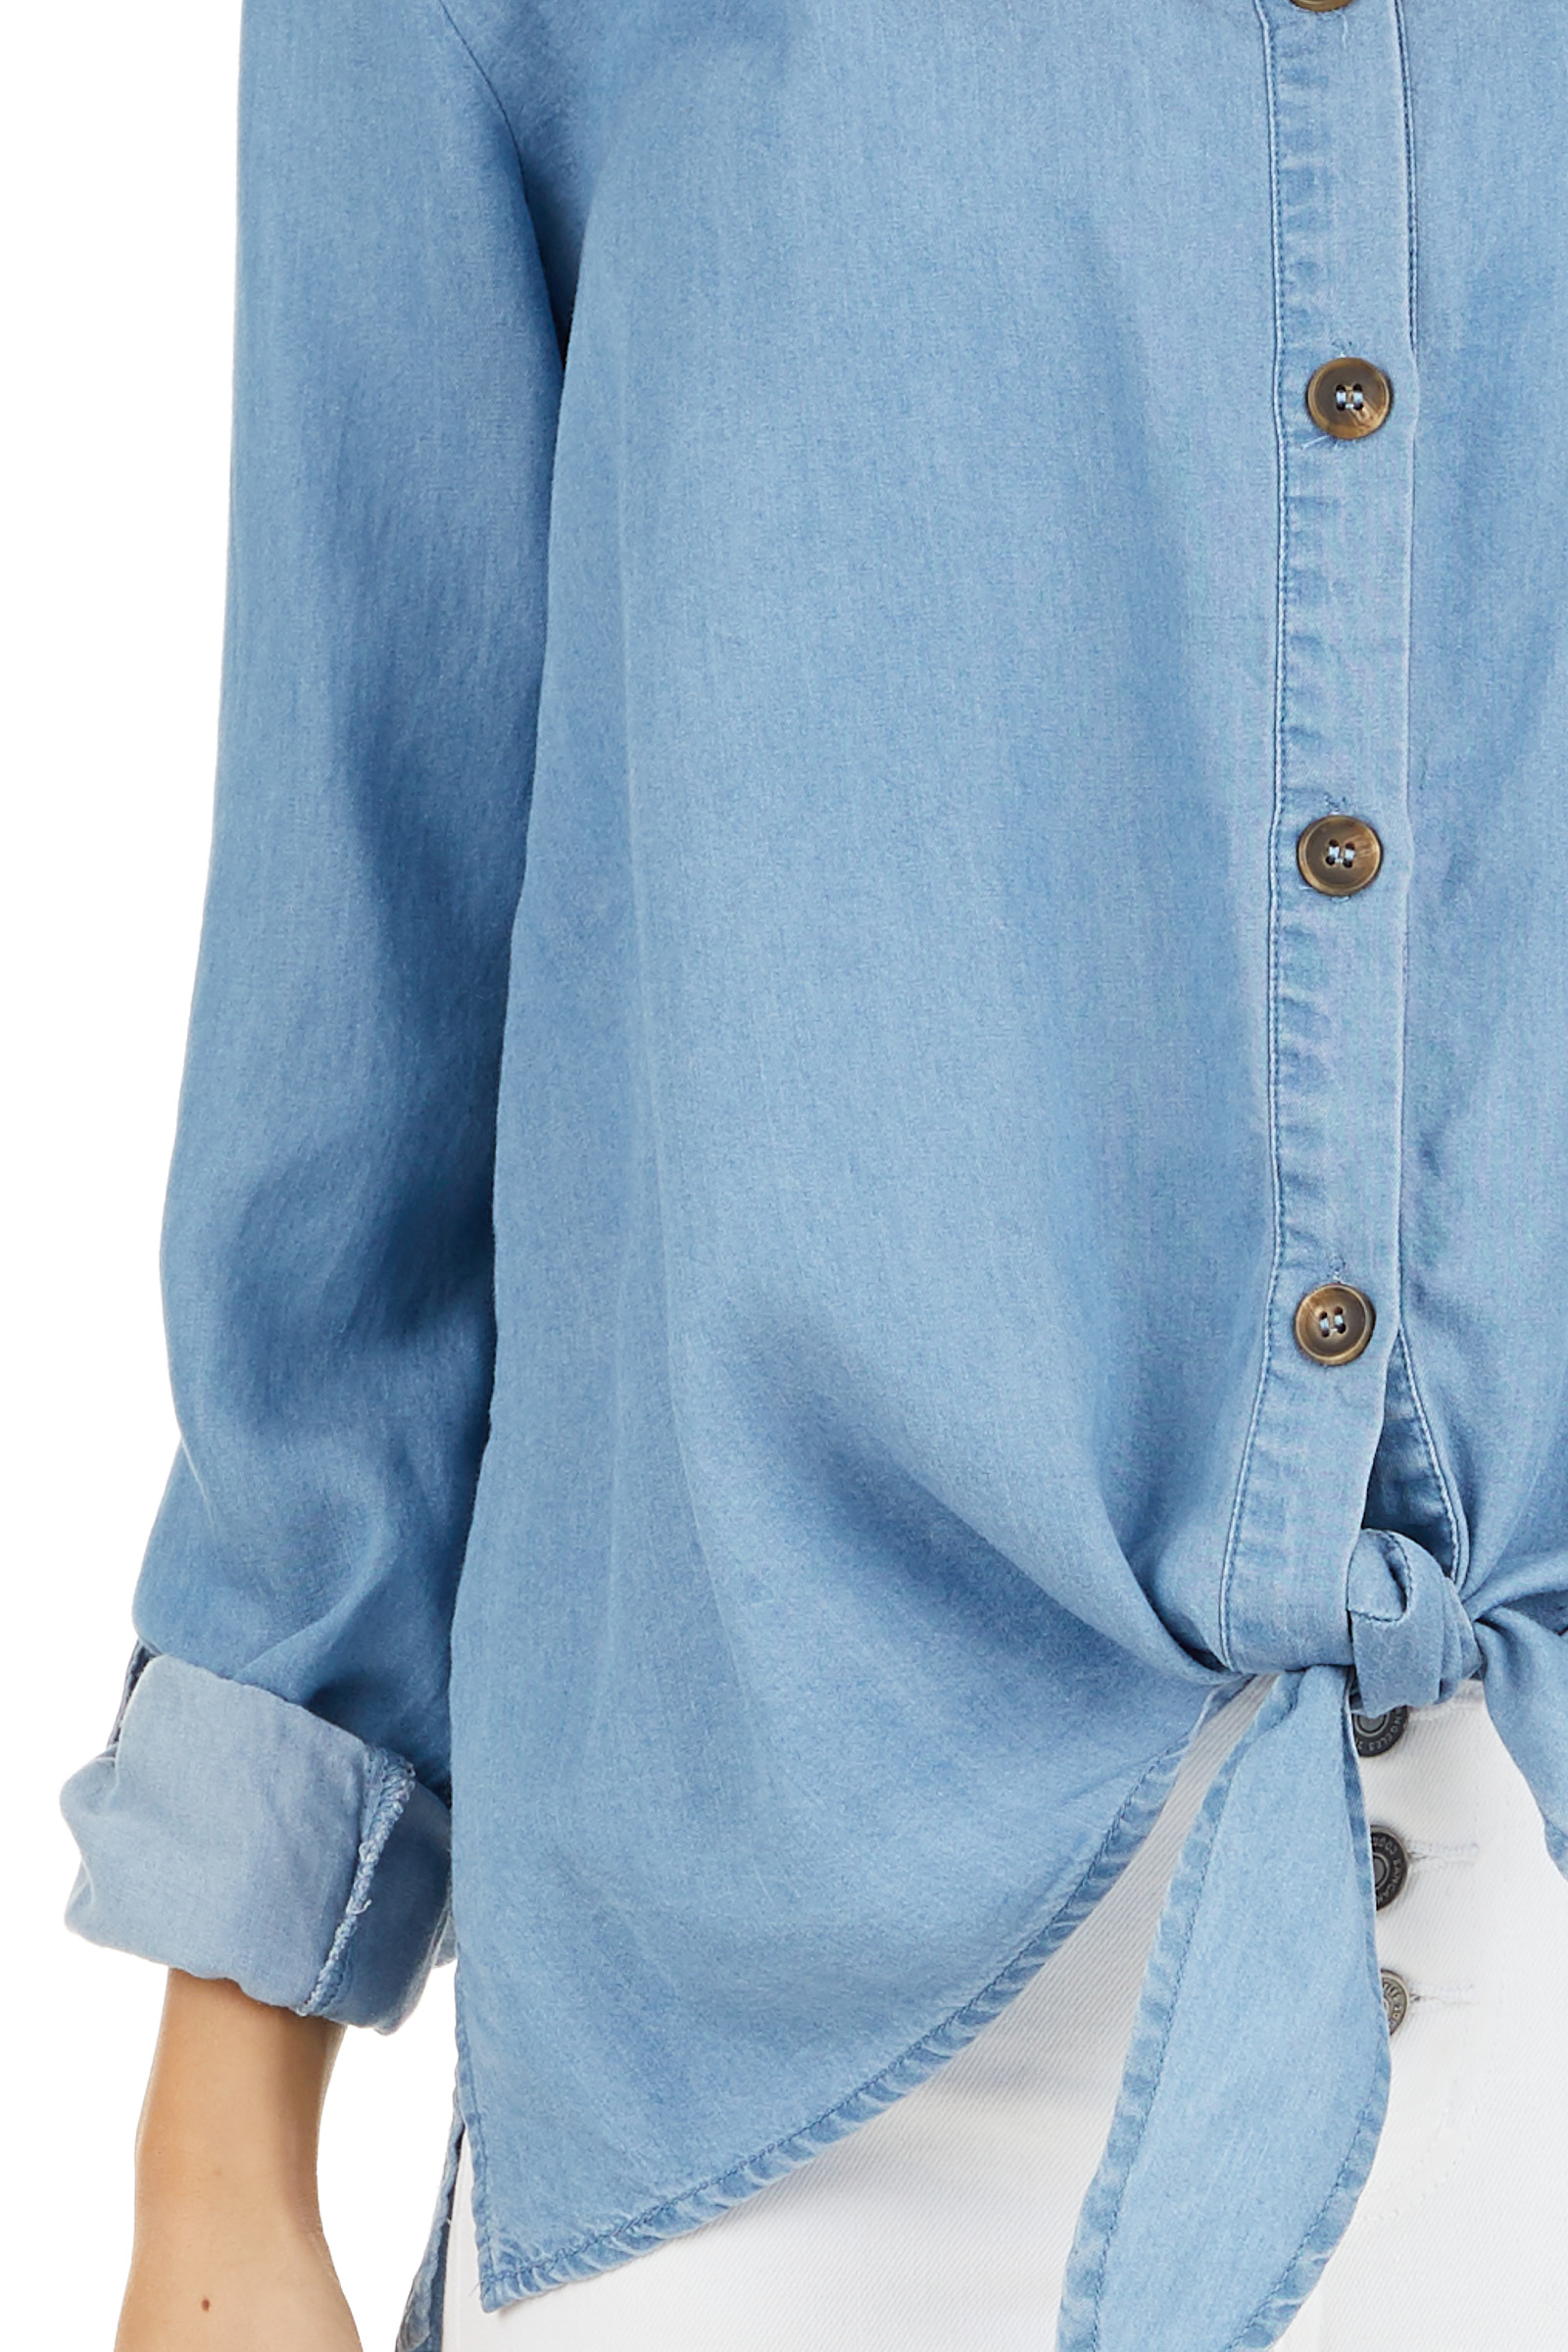 Medium Wash Chambray Button Up Top with Front Tie Detail detail